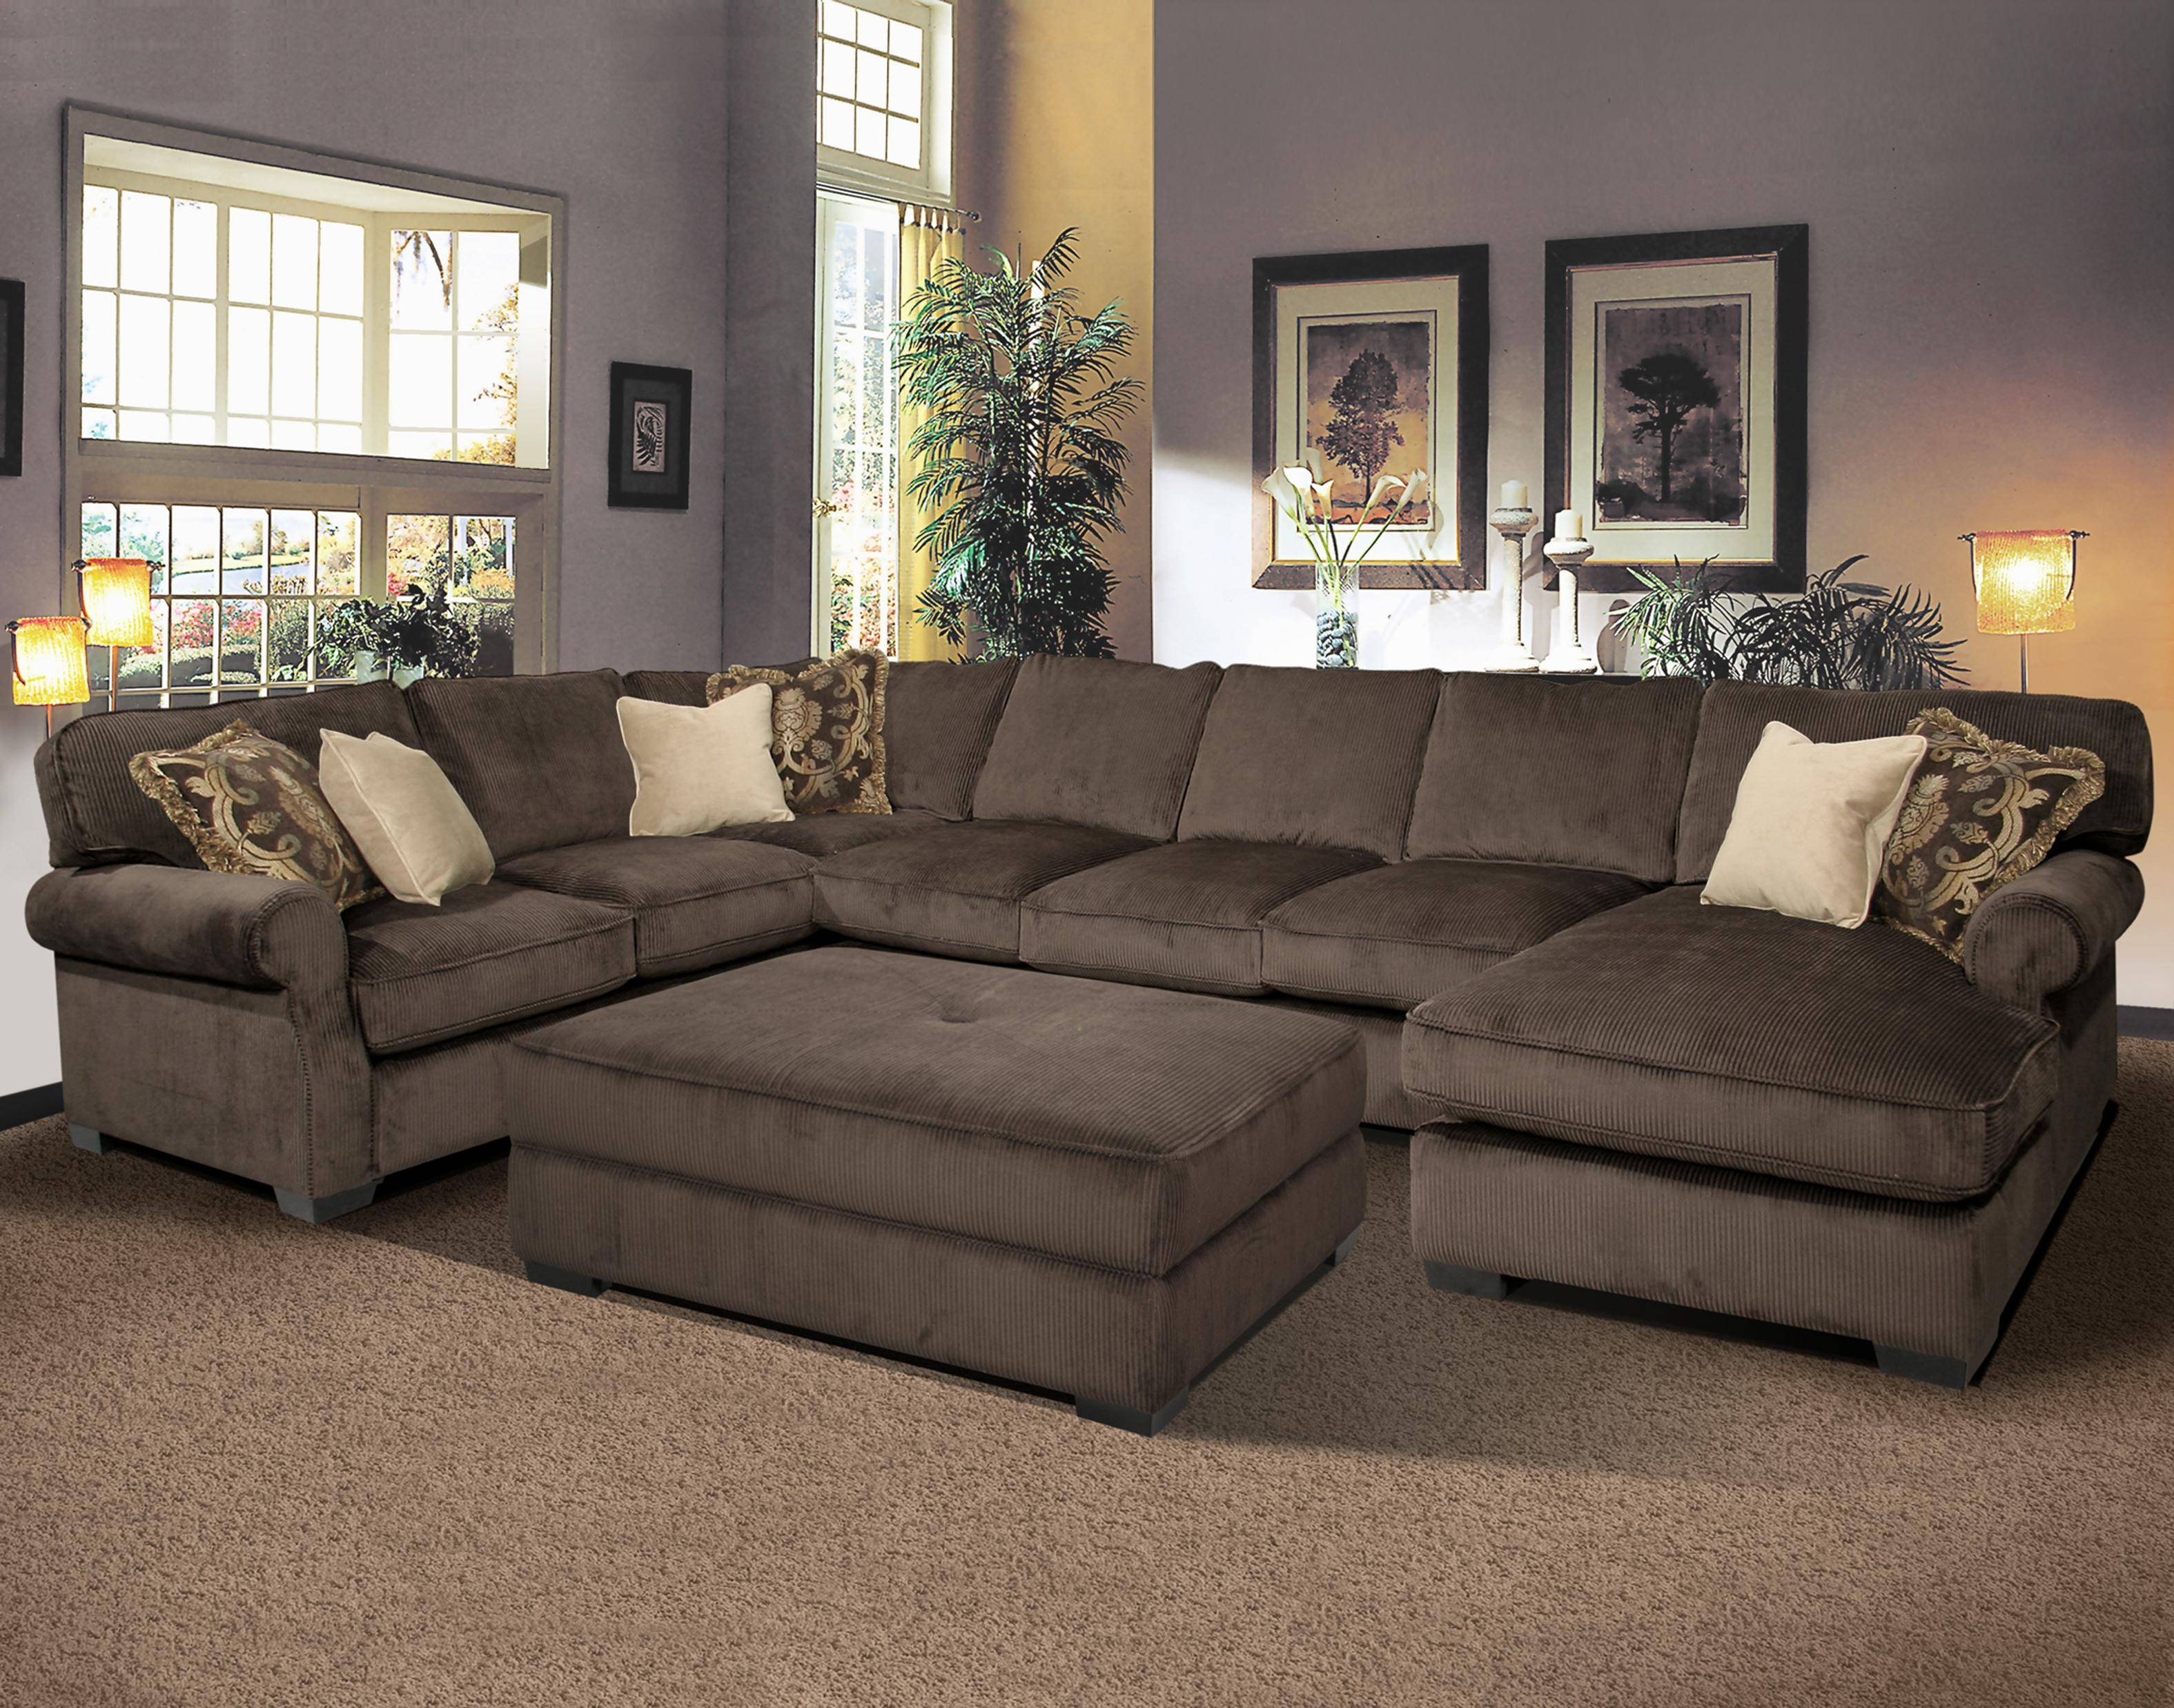 Furniture Home : Best Sectional Sofa With Recliner And Sleeper 37 inside Elegant Sectional Sofas (Image 14 of 30)